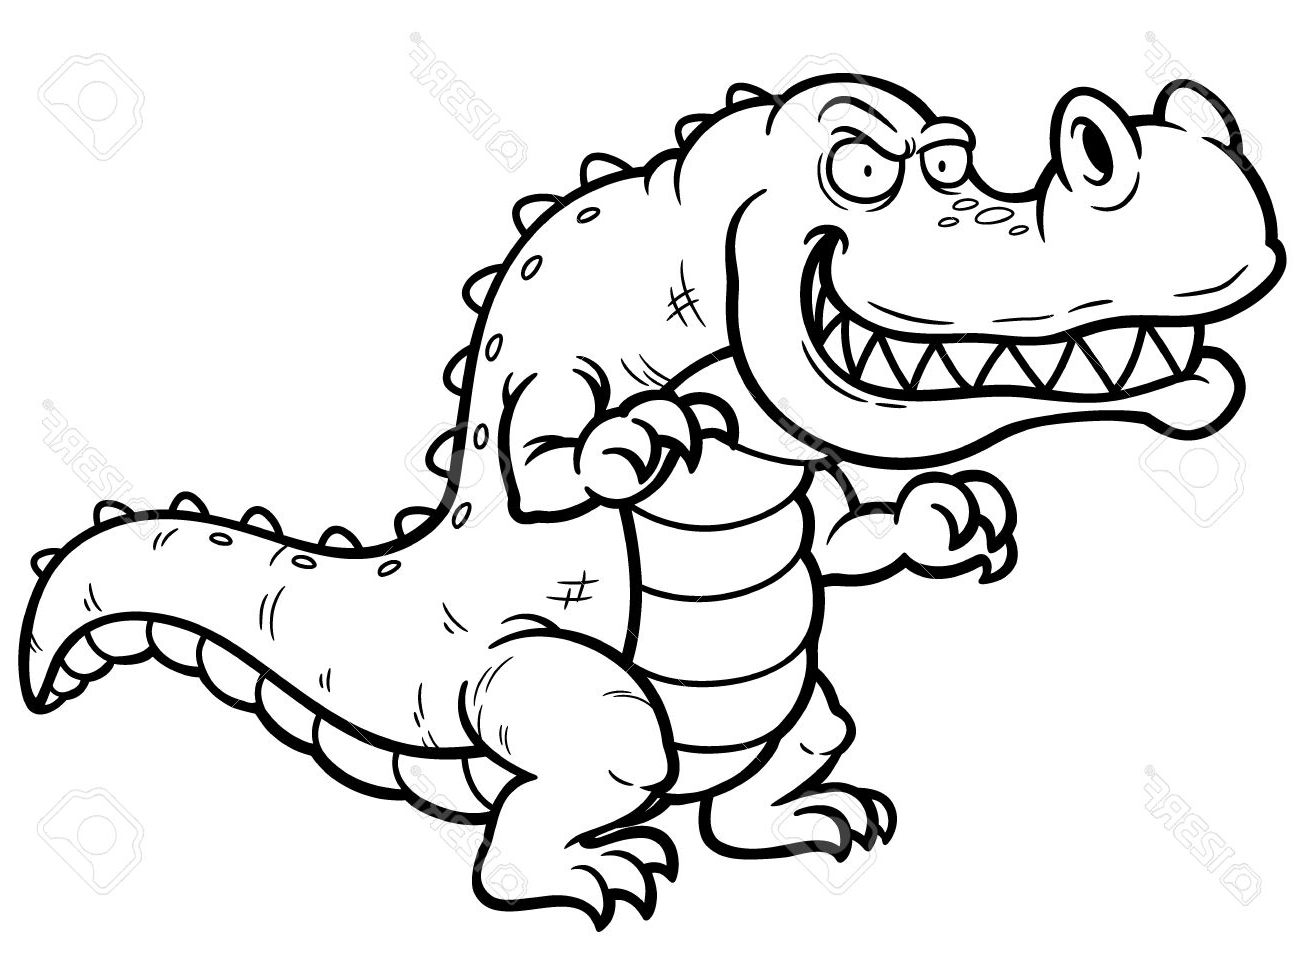 alligator drawing cartoon alligator drawing in 4 steps with photoshop drawing alligator